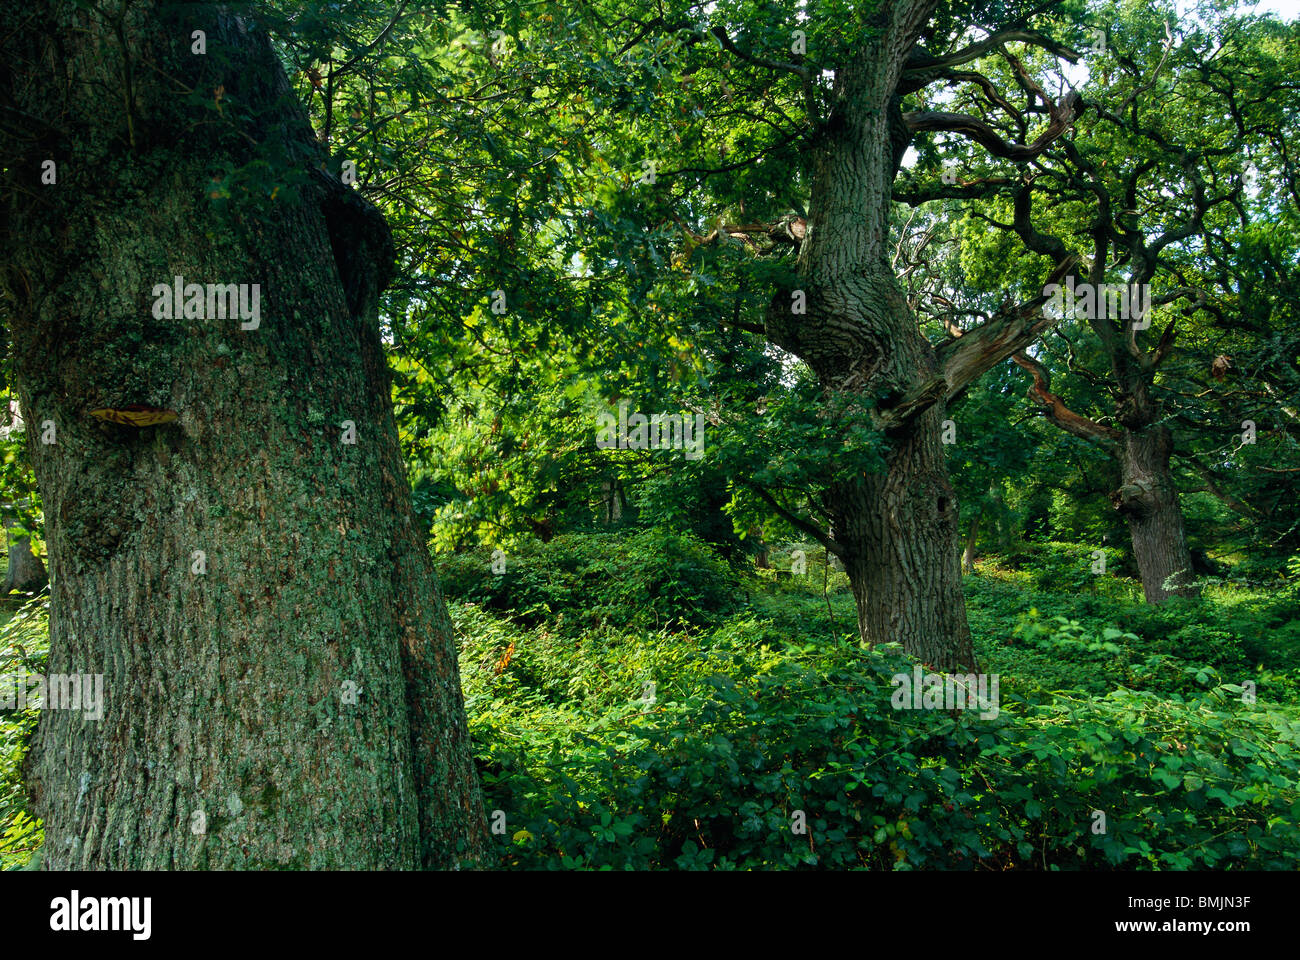 Forest of oak trees - Stock Image